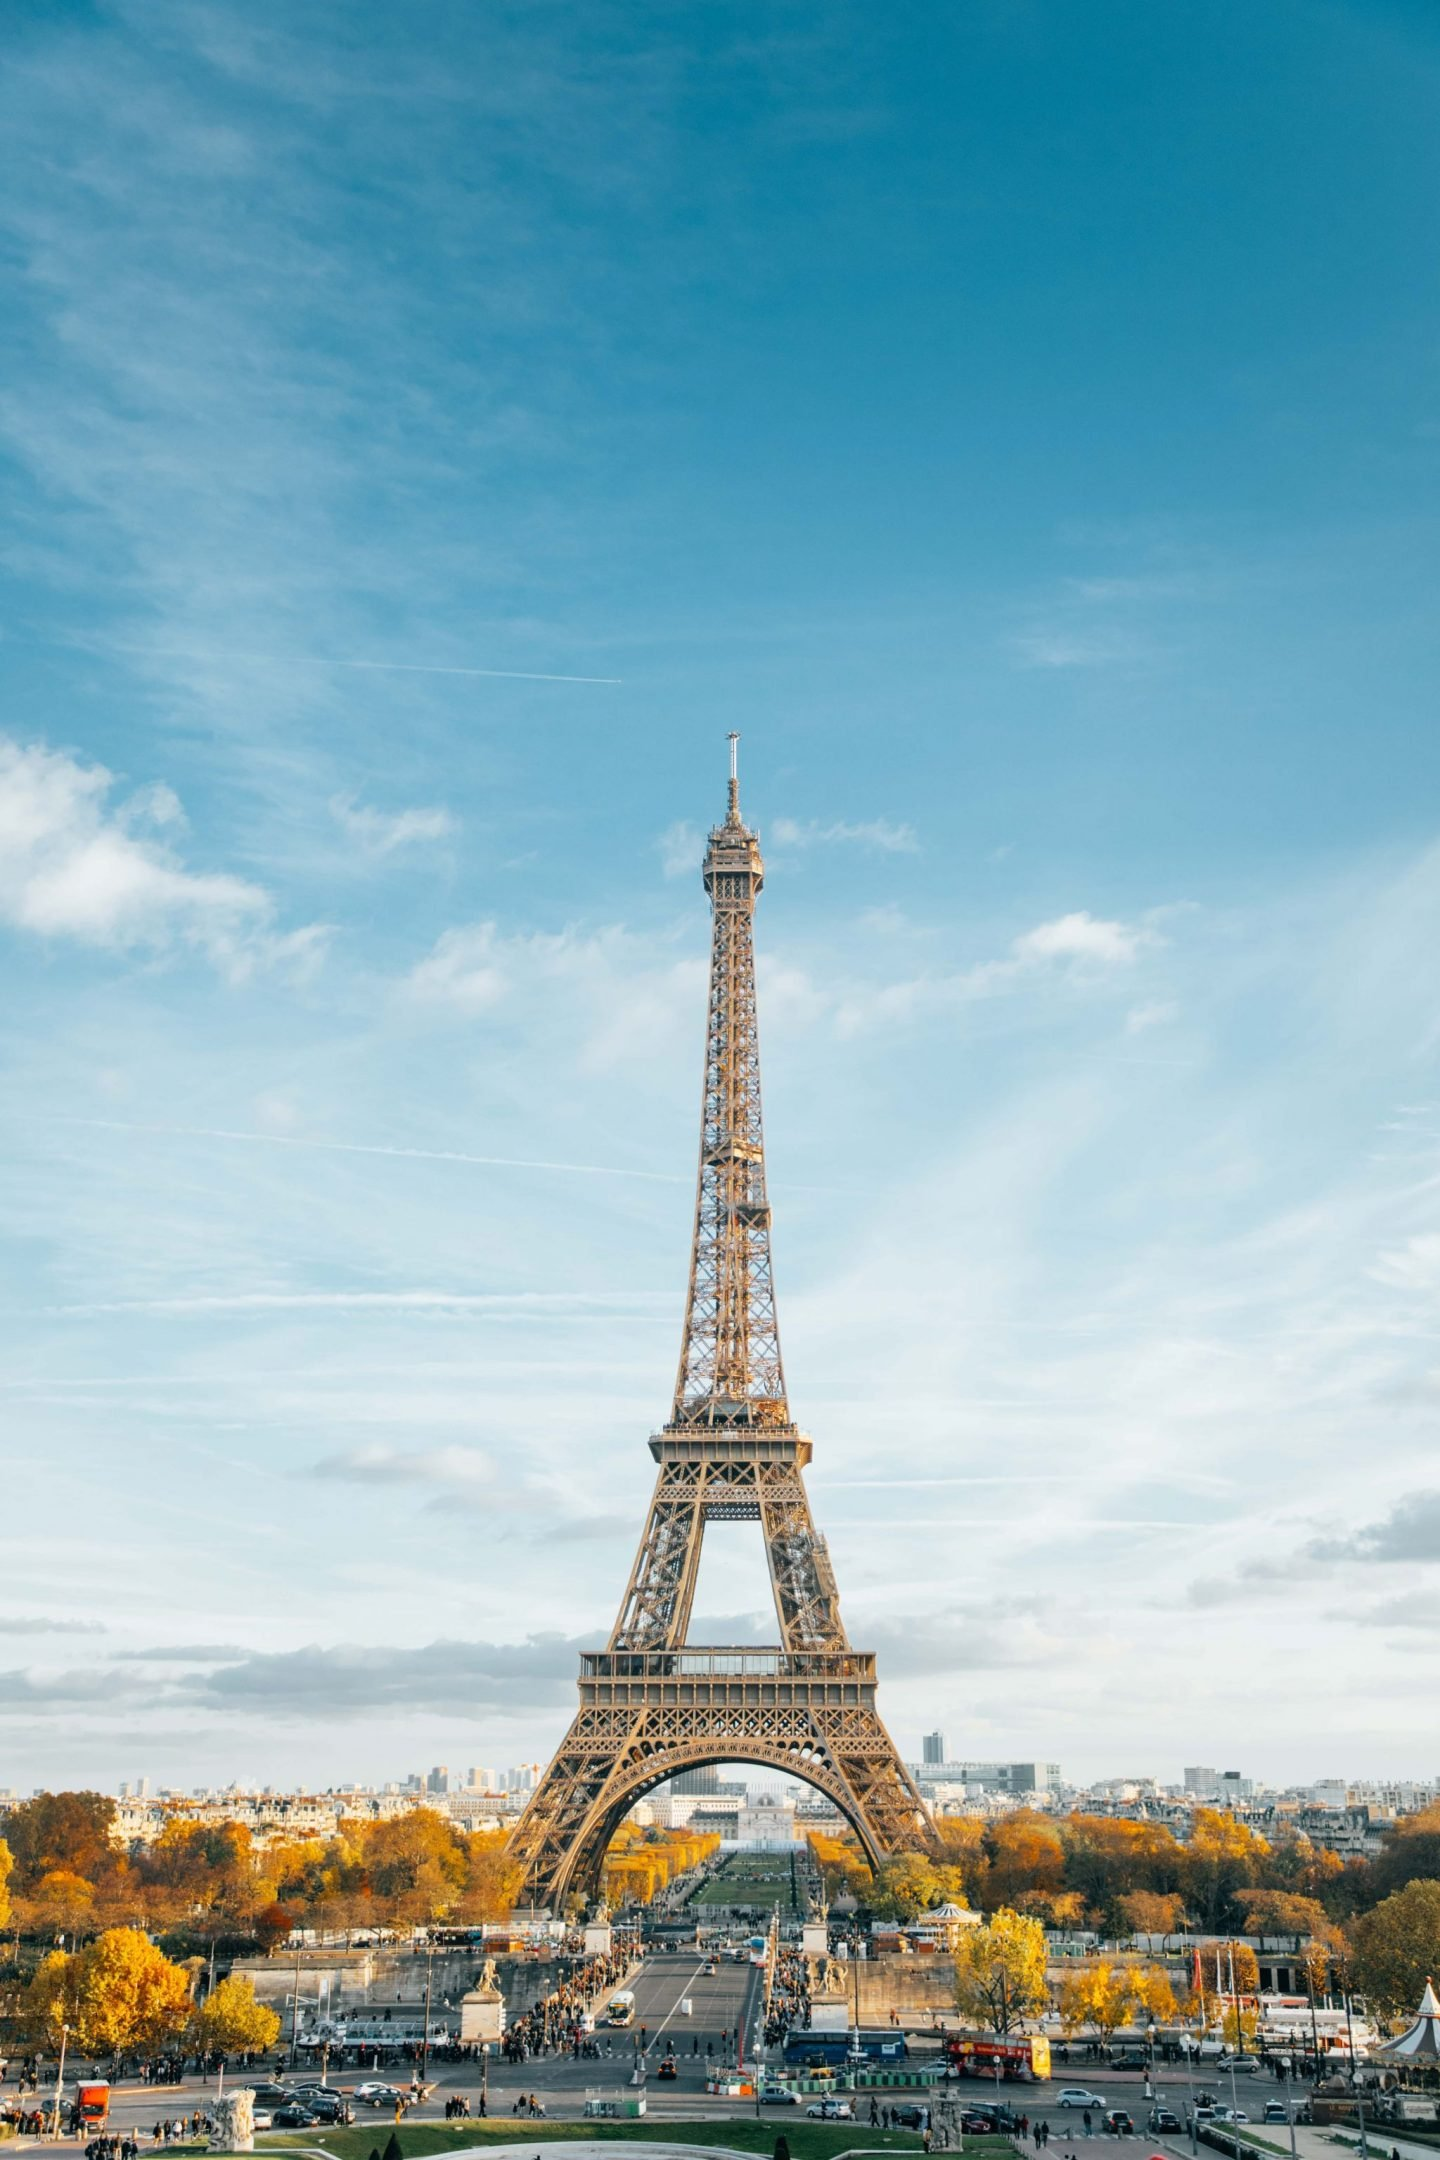 Paris 1 day itinerary. The Eiffel Tower is a must-see